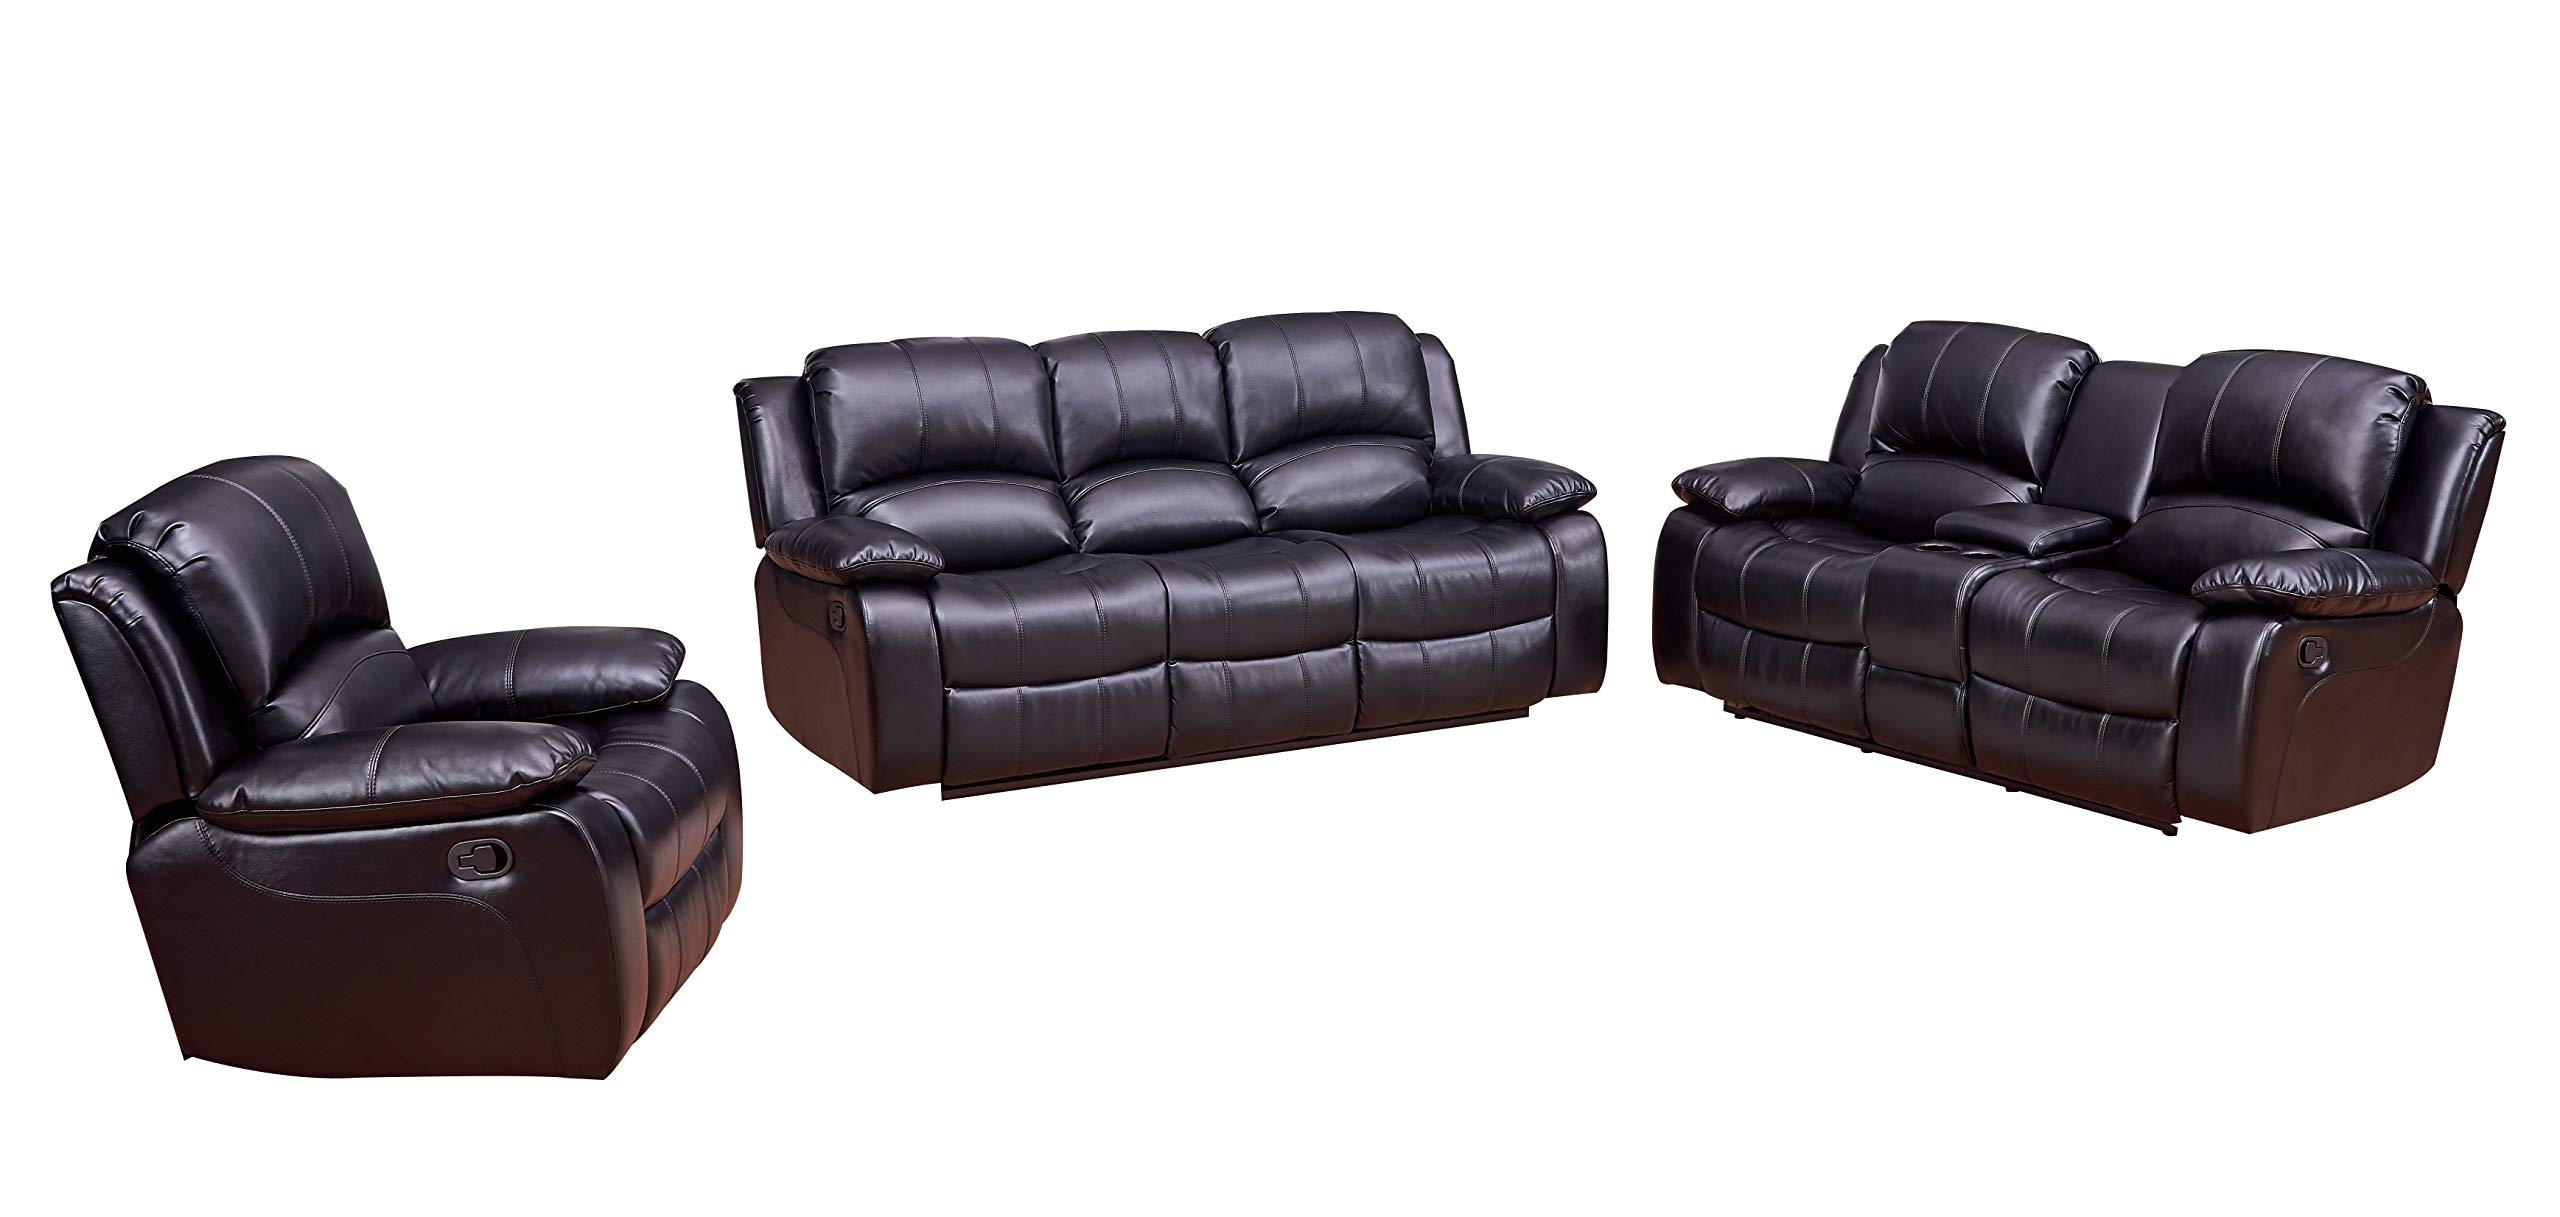 Betsy Furniture 3-PC Bonded Leather Recliner Set Living Room Set in Black, Sofa + Loveseat + Chair, Pillow Top Backrest and Armrests 8018-321 by Betsy Furniture